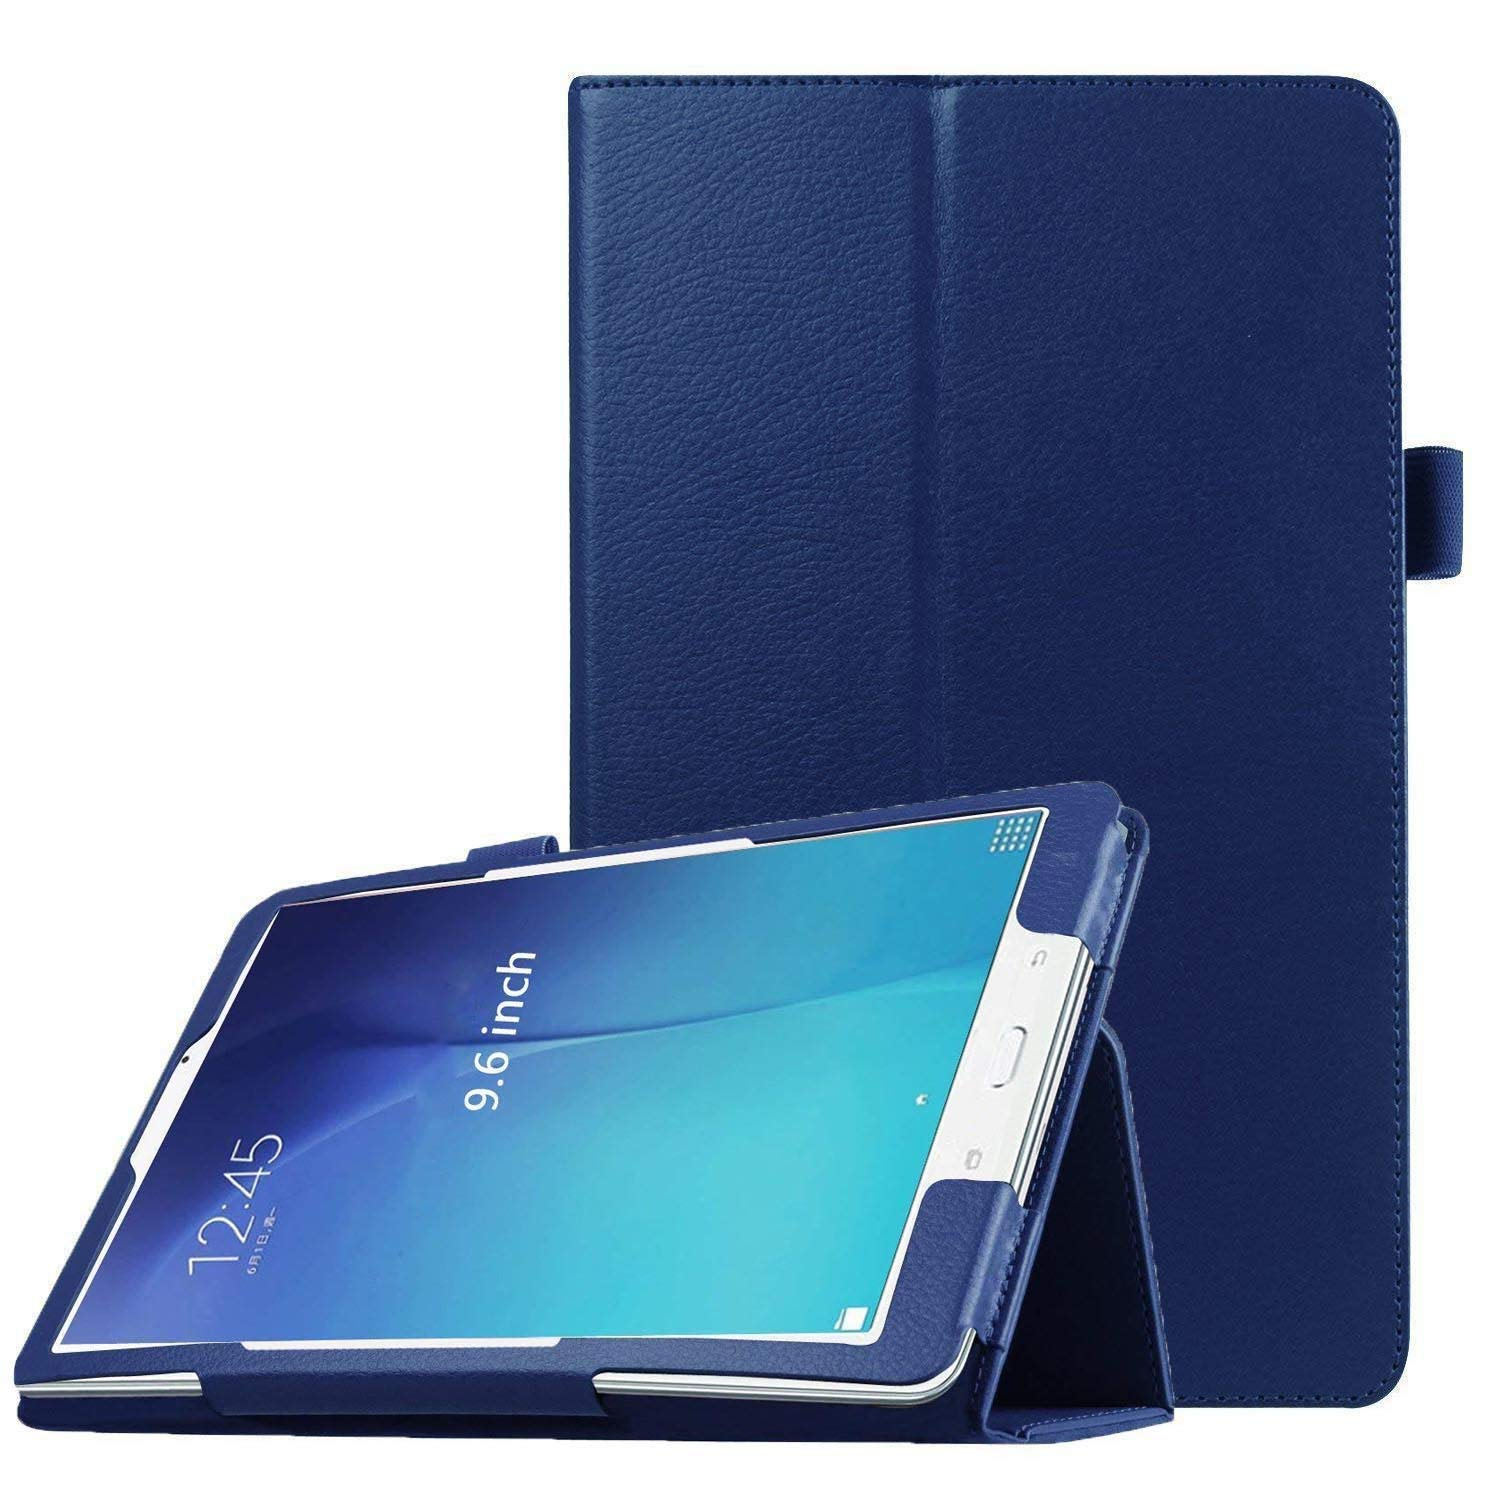 new concept aafff 74200 PEYOU Compatible for Tab E 9.6 Case, Slim Smart Folio Stand Case Cover  Compatible for Samsung Galaxy Tab E/Tab E Nook 9.6 inch Tablet ...